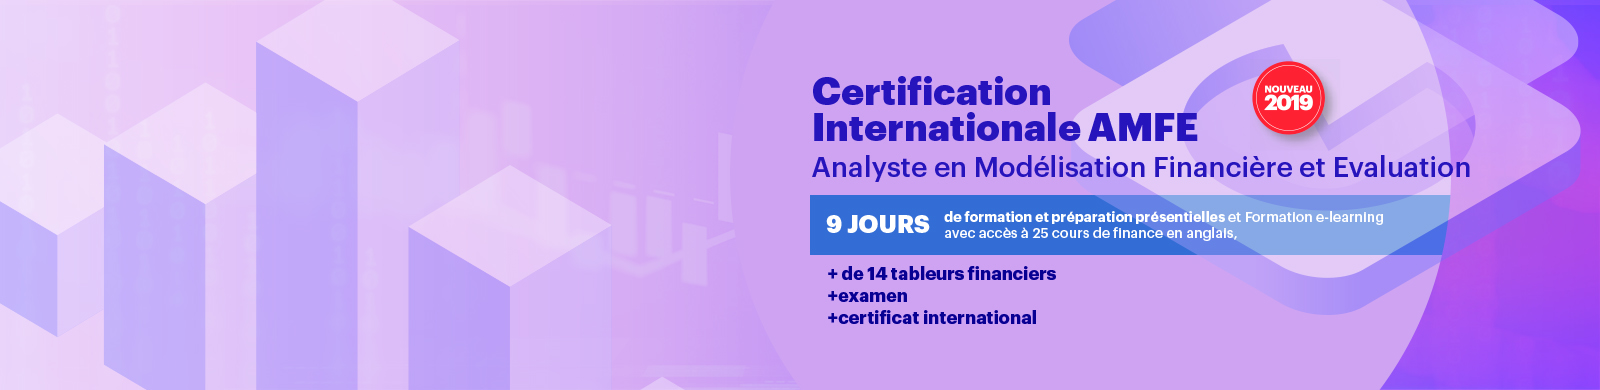 Certified Financial Modeling & Valuation Analyst (FMVA)®